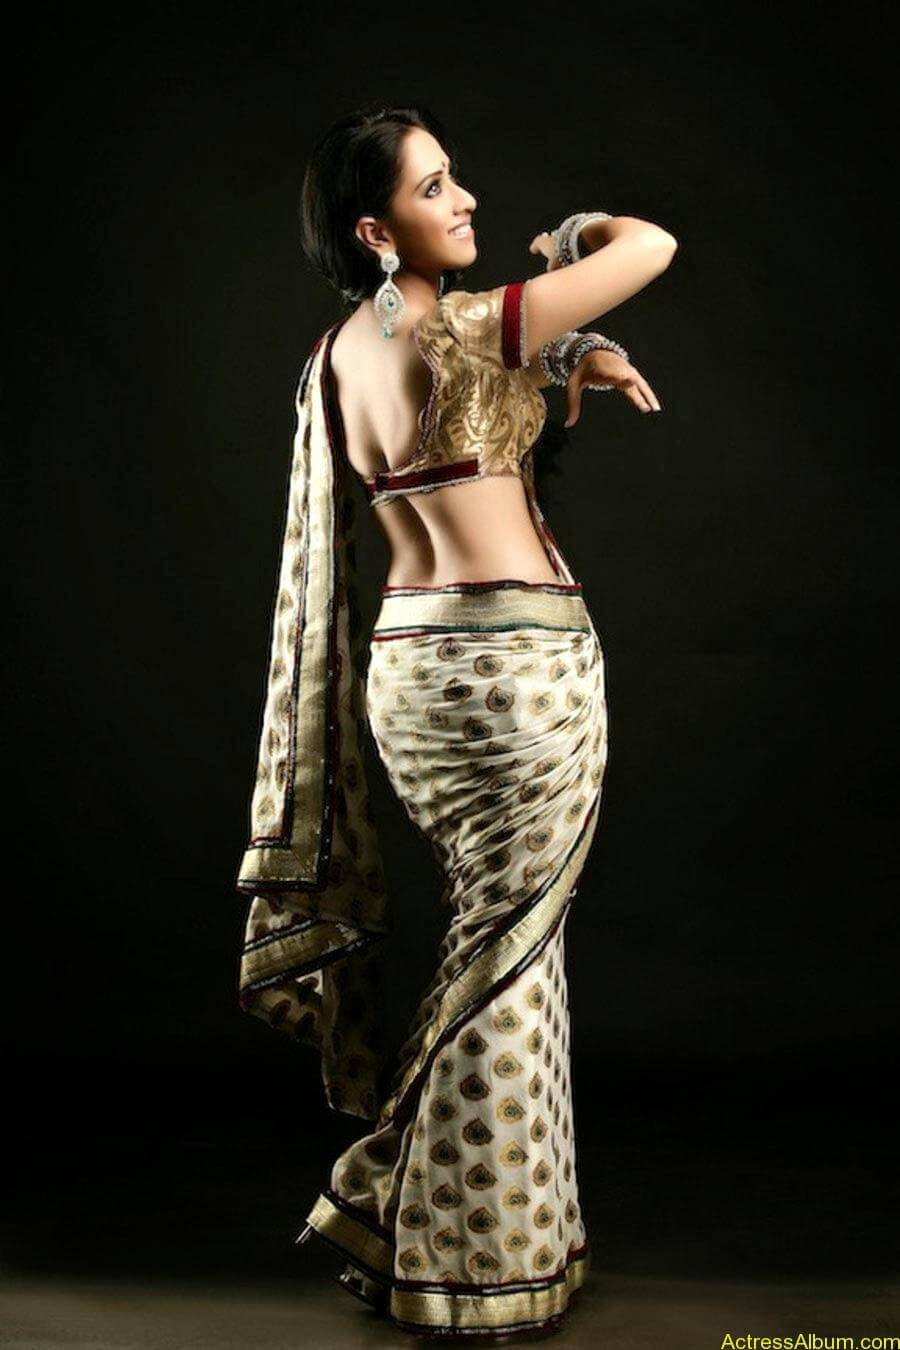 Monali sehgal saree photoshoot 1